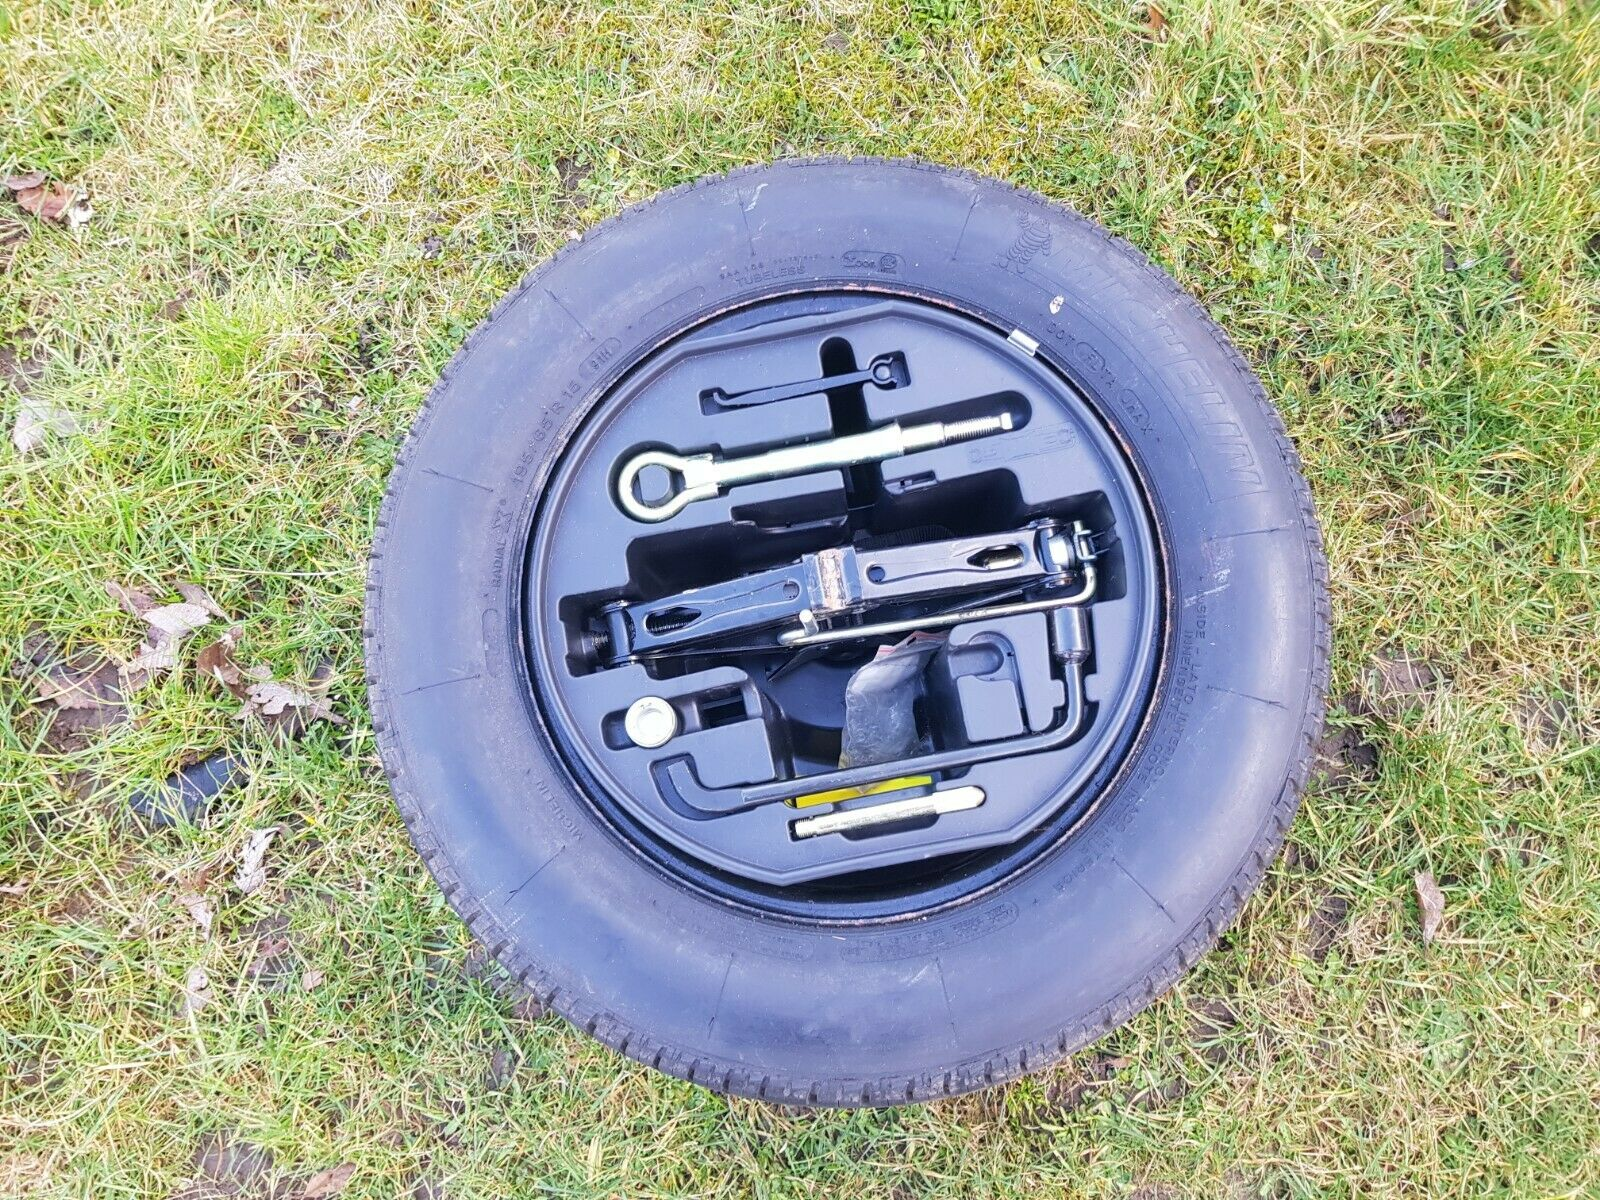 Citroen C4 04-10 1.6 HDI BRAND NEW SPARE WHEEL AND JACK ...